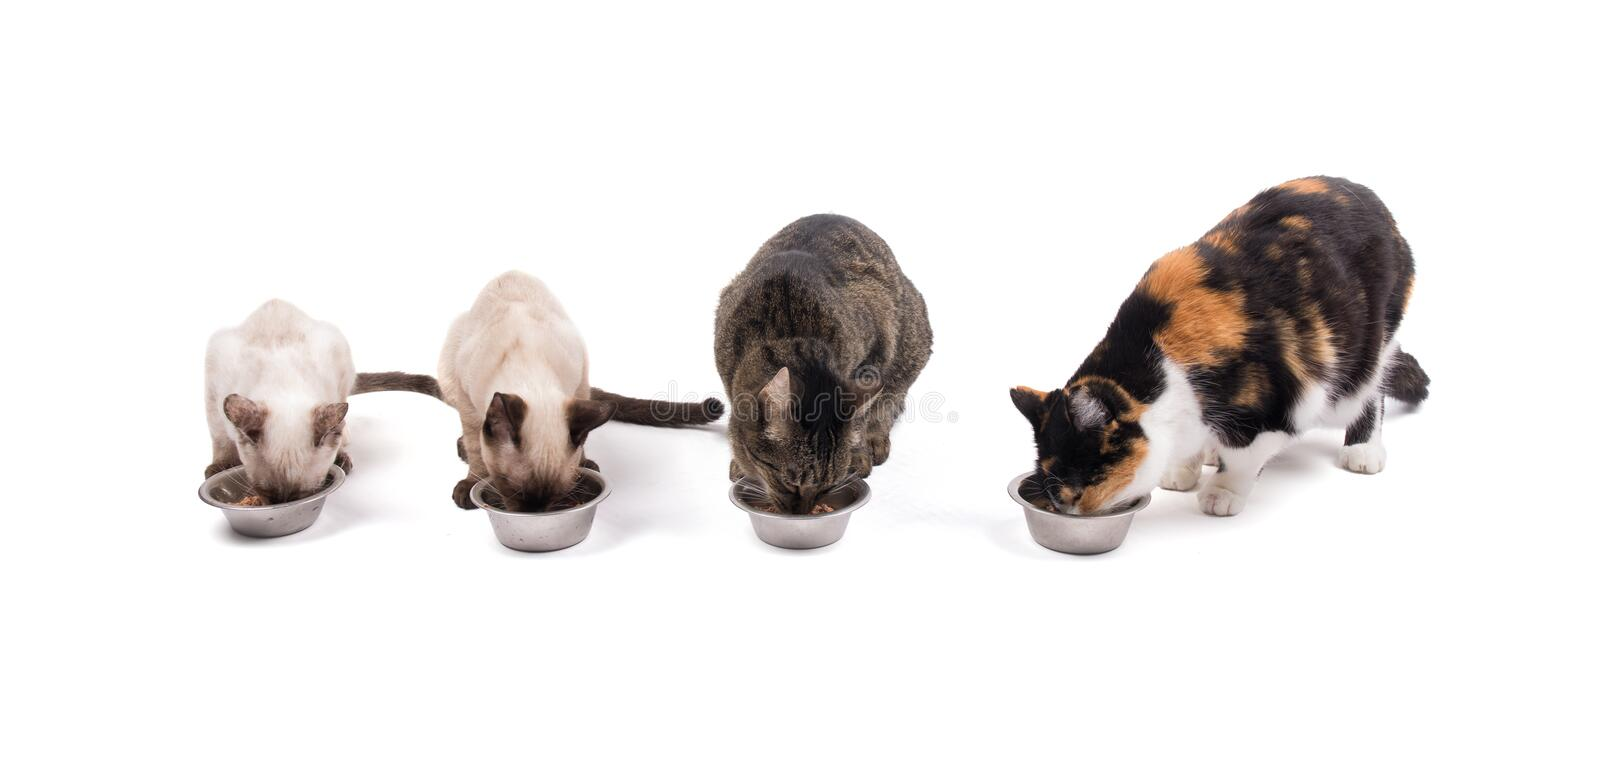 Front view of two kittens and two adult cats eating their dinner royalty free stock image